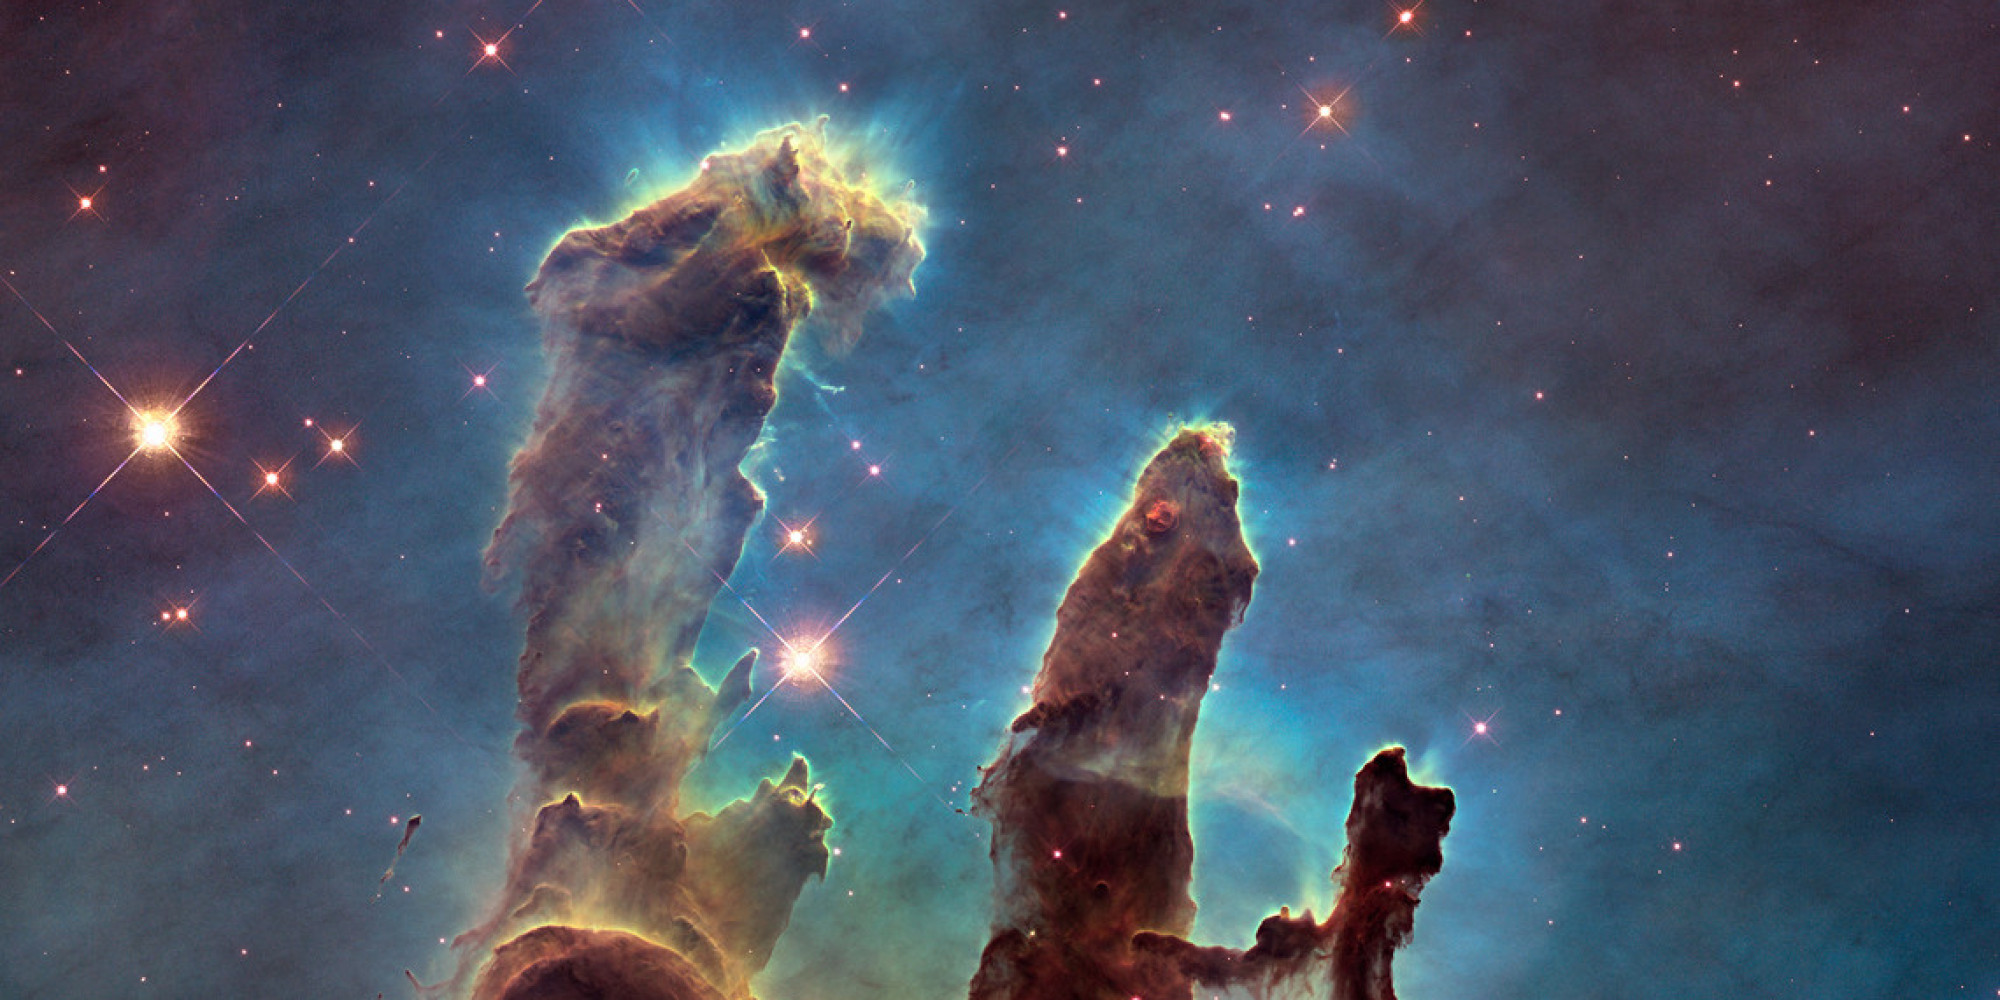 hubble backgrounds pillars of creation - photo #6